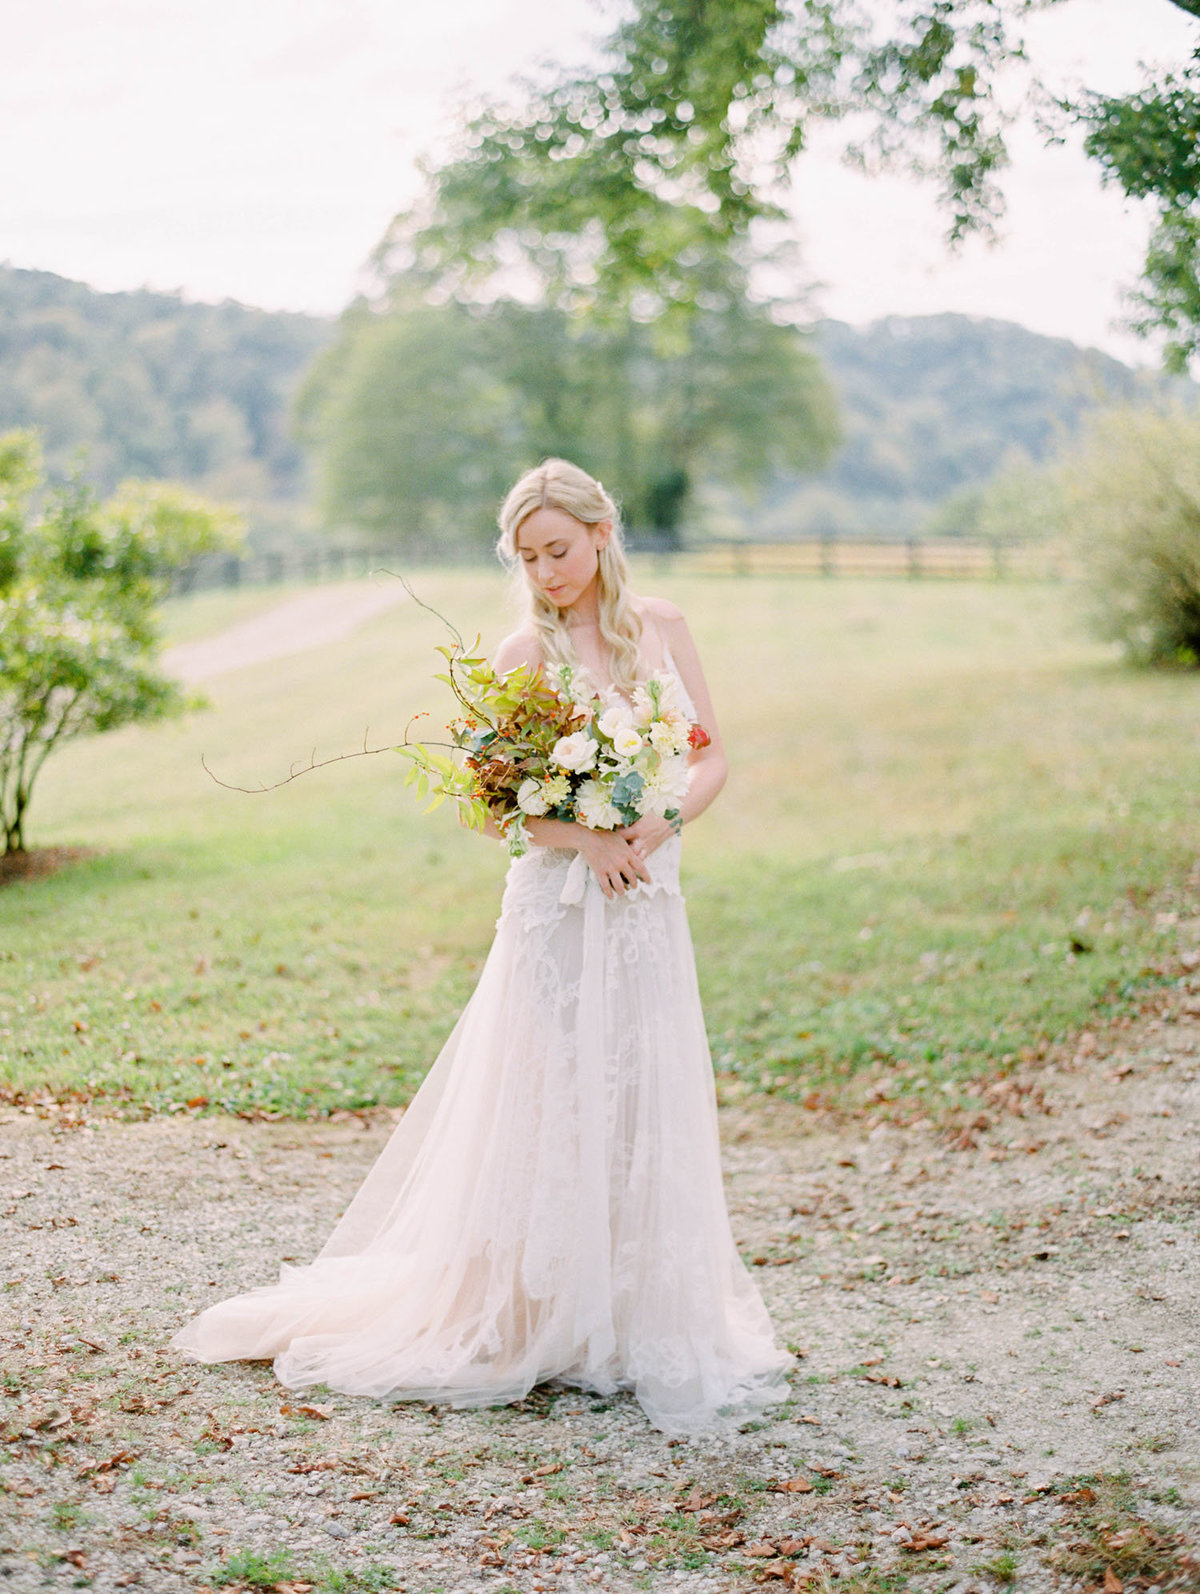 00_AOP_Kentucky_Wedding_01_MustHaveImage